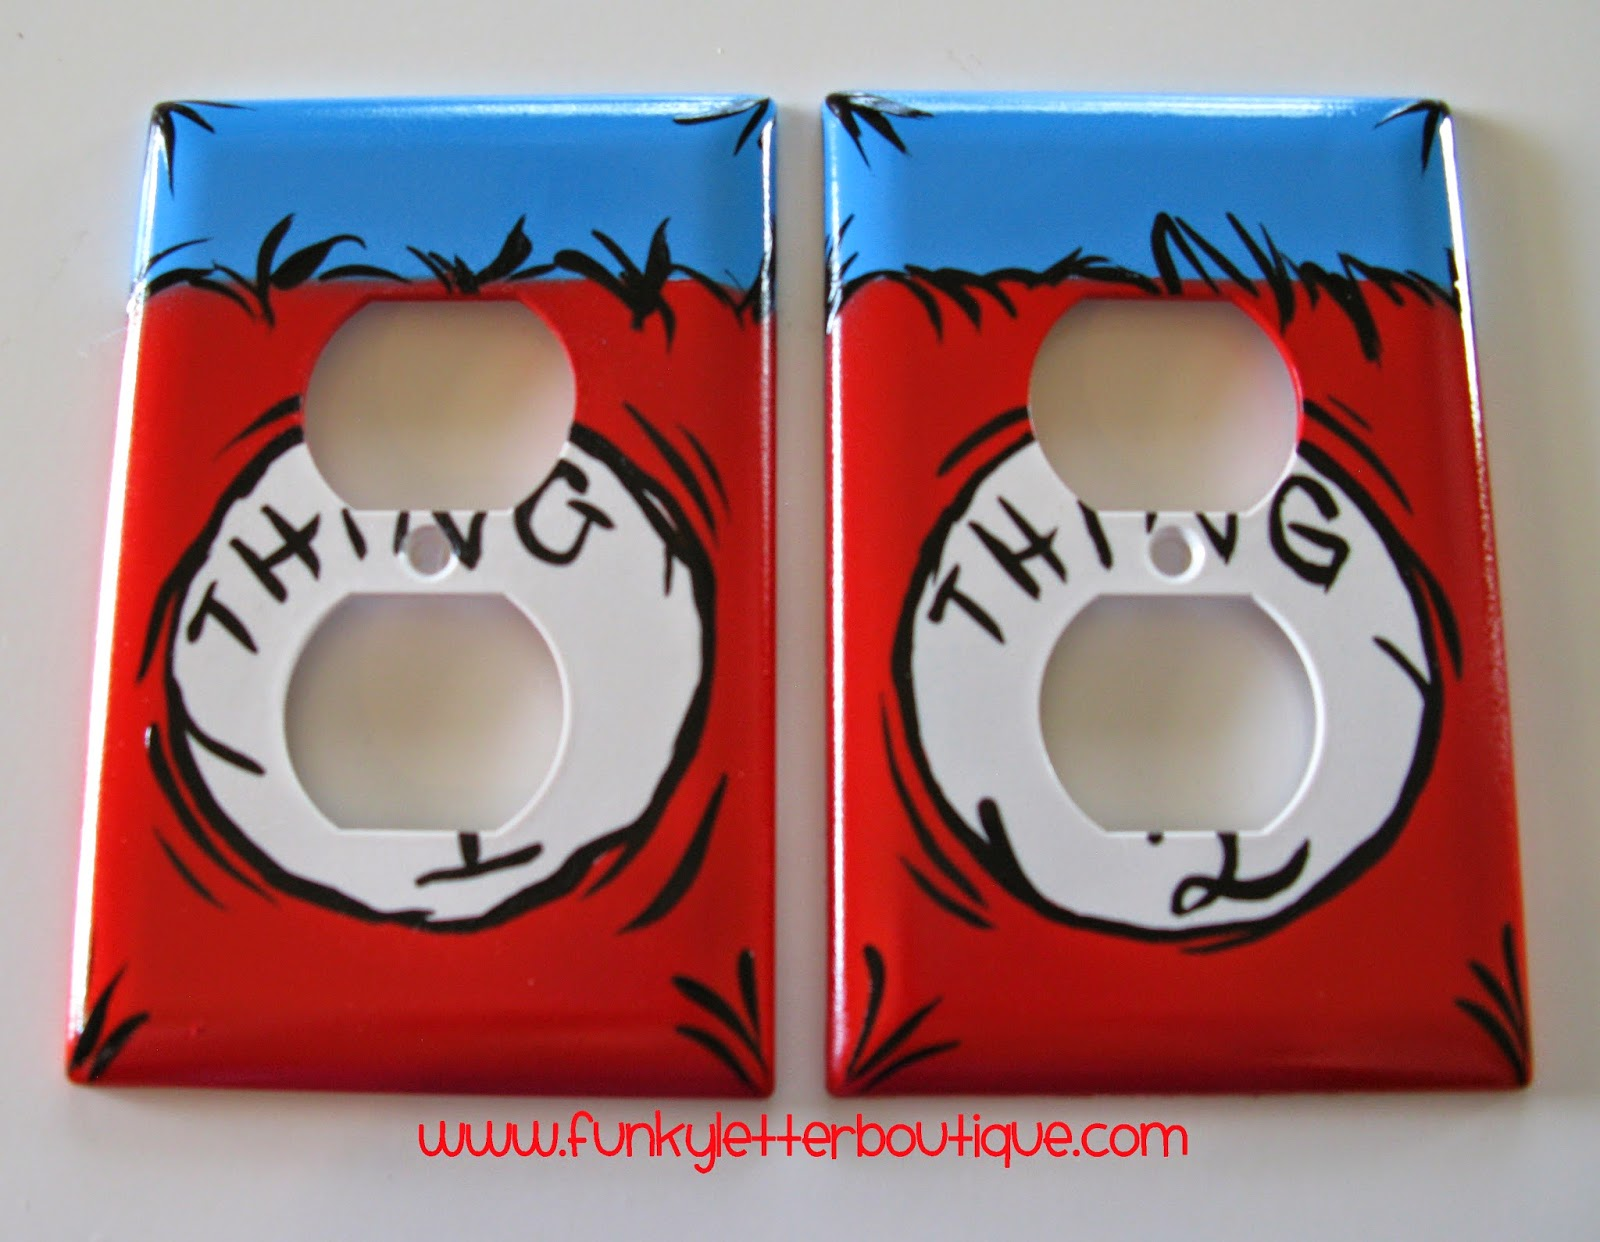 Pottery barn dr seuss shower curtain - Dr Seuss Thing 1 And Thing 2 Outlet Plates